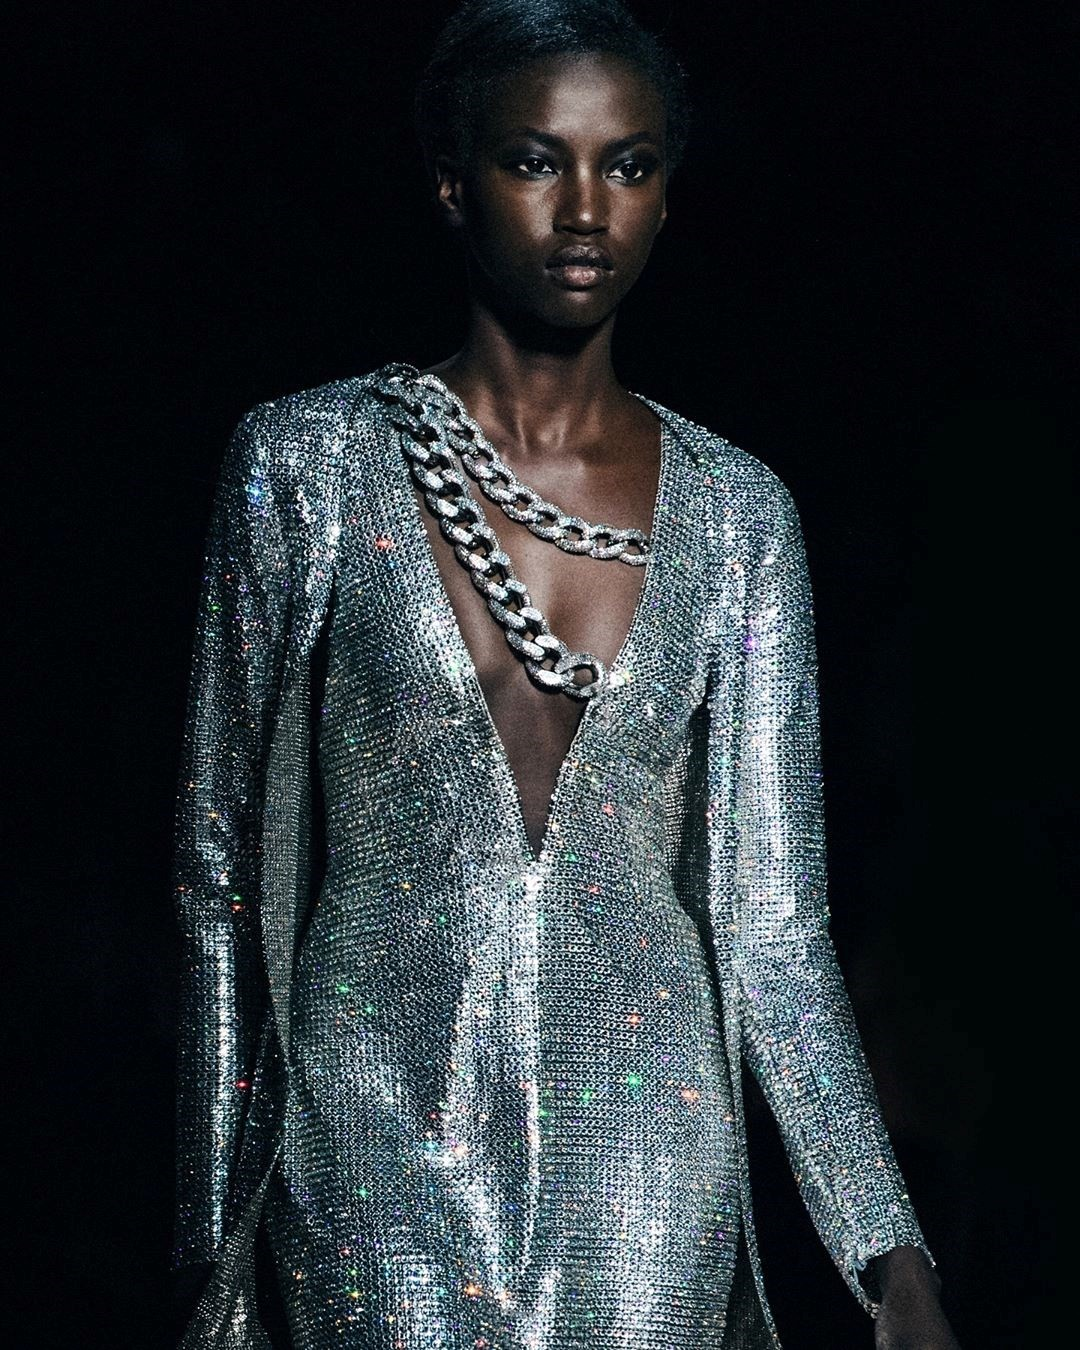 Tom Ford Autumn/Winter 2019